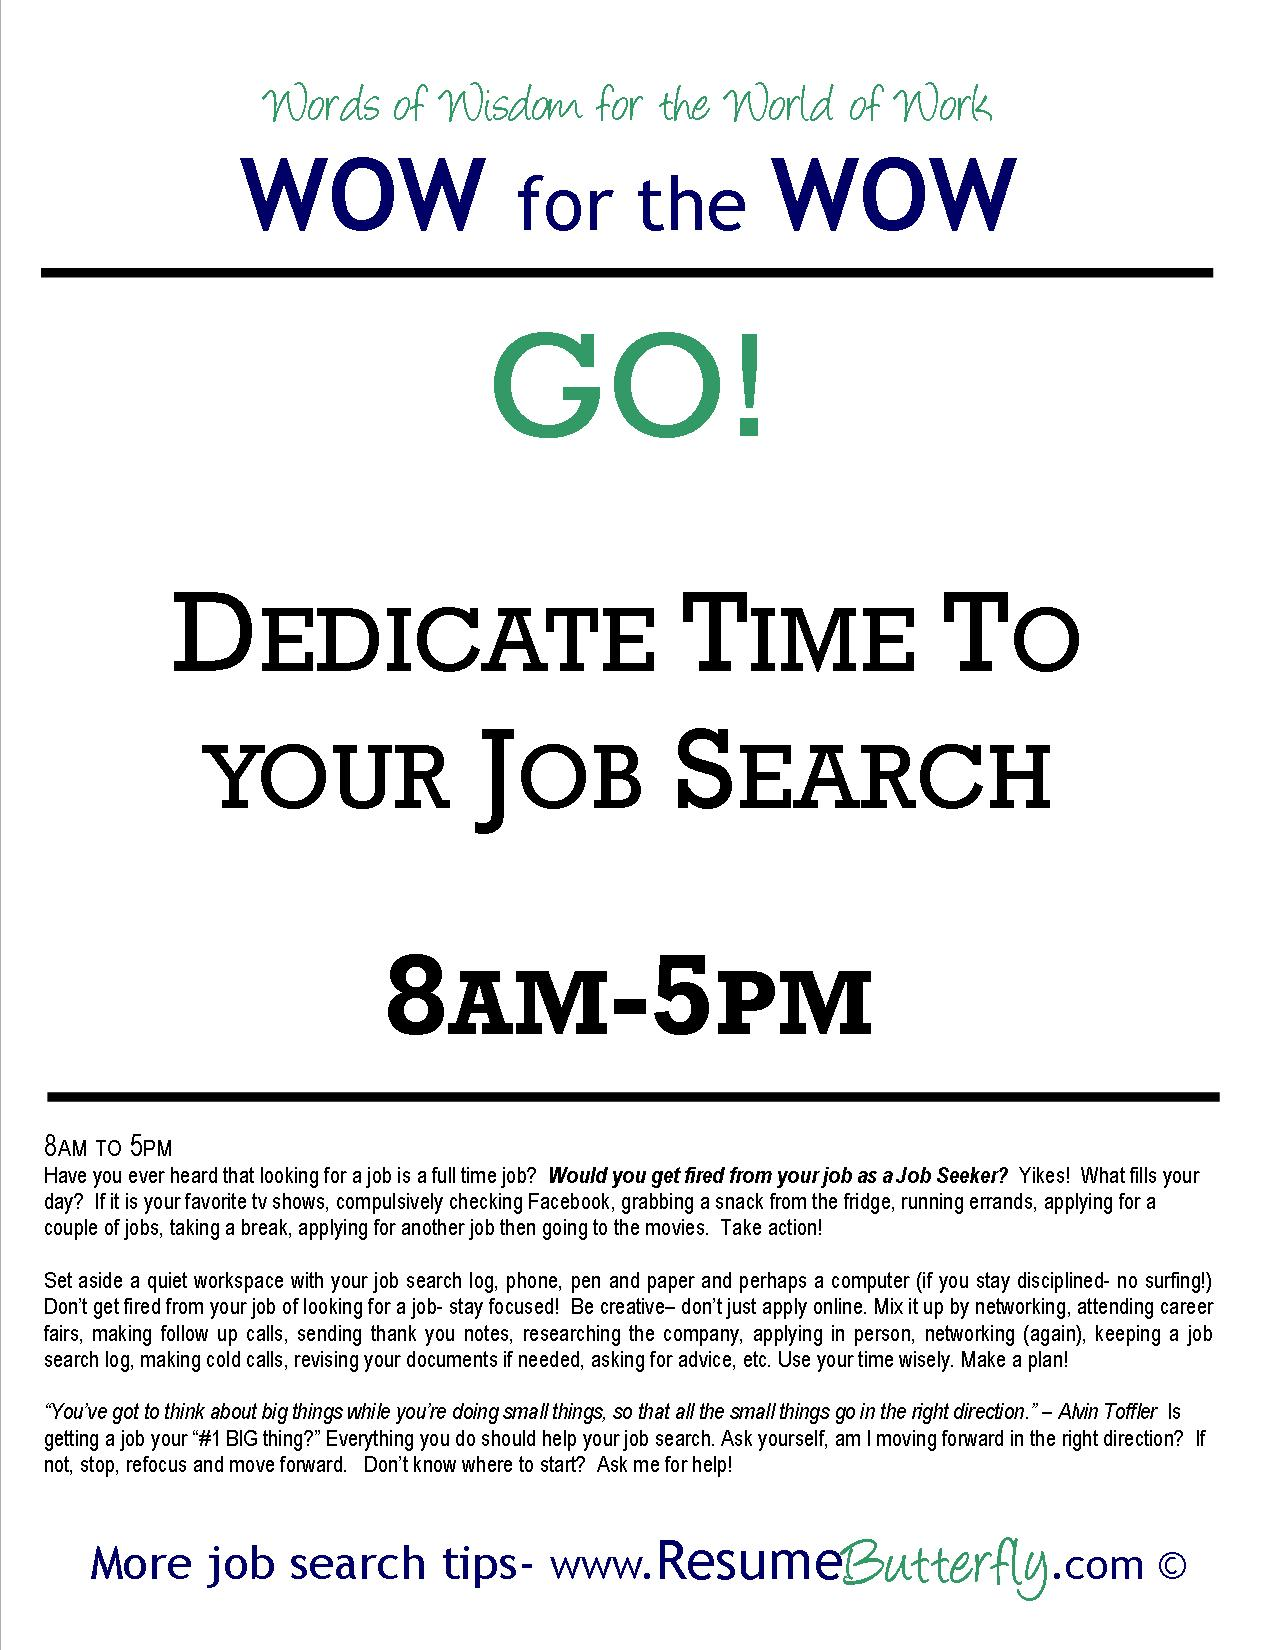 wow for the wow job search skills resume butterfly go